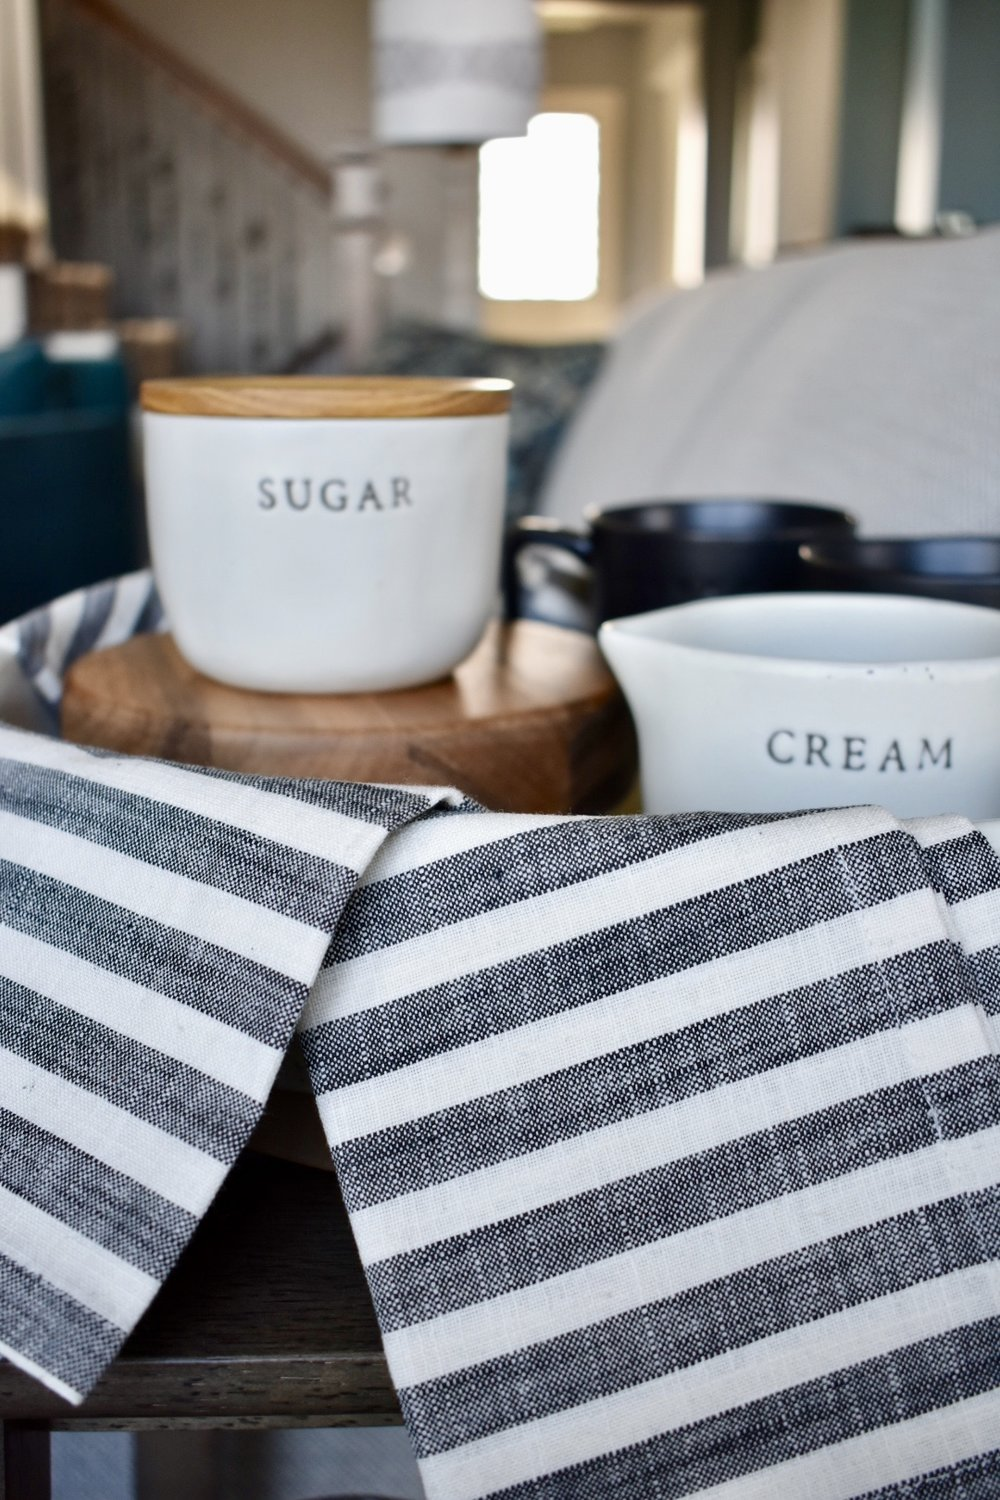 On The Paige Blog | Styling Hearth & Hand with Magnolia | Cream & Sugar Cellars | Stoneware | Coffee Tray | Rustic Farmhouse Kitchen